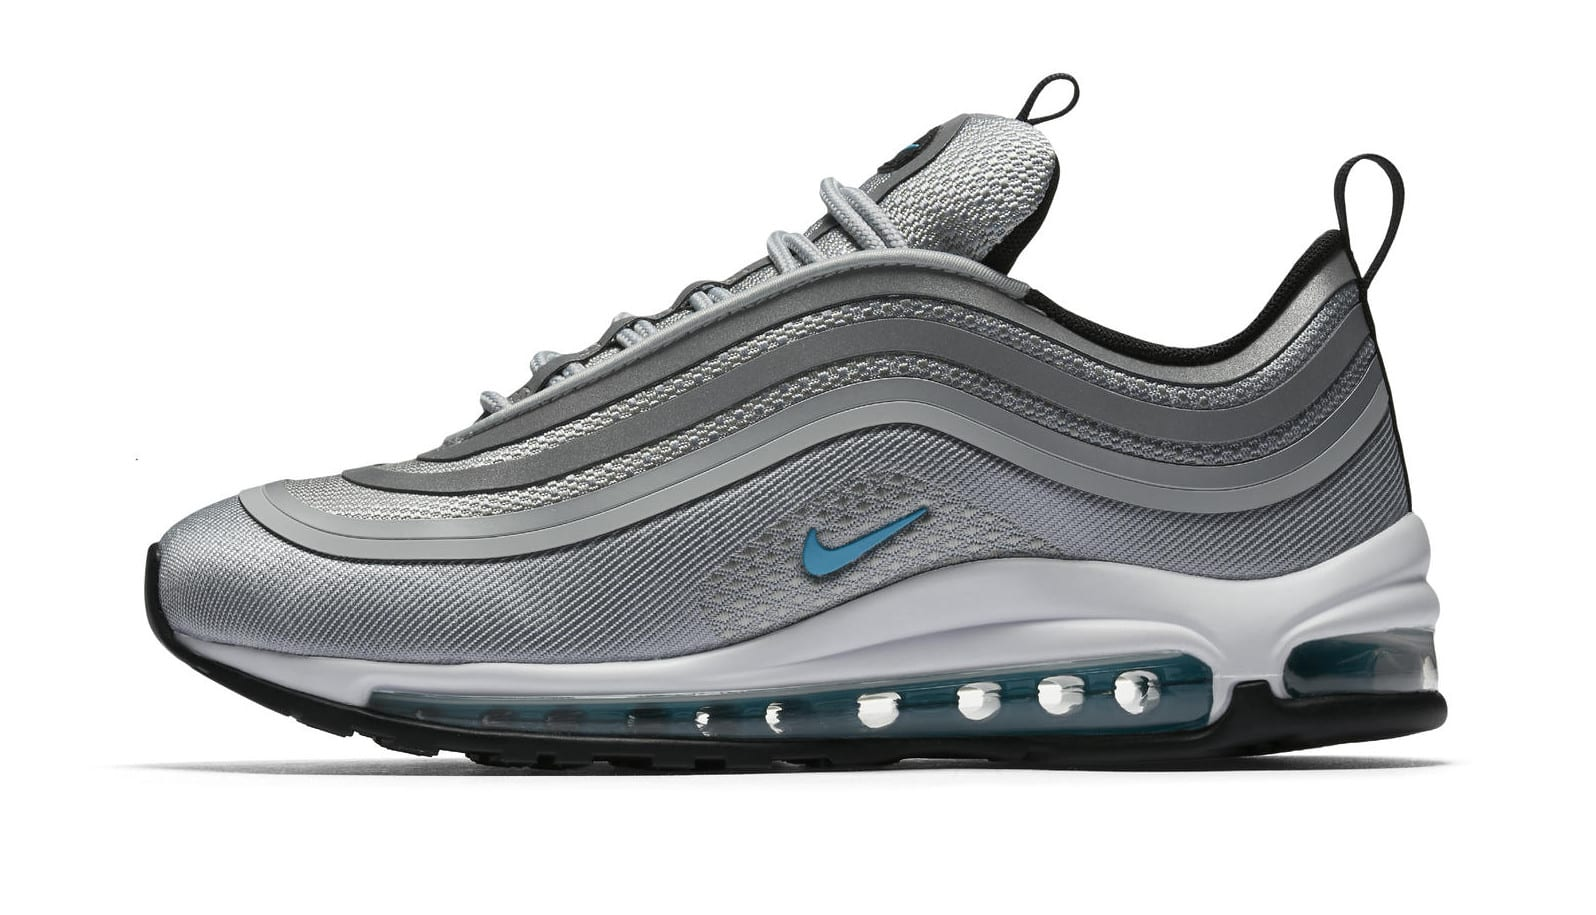 74c9bd1001 Men's Air Max 97 Lifestyle Shoes. Cheap Nike ZA.